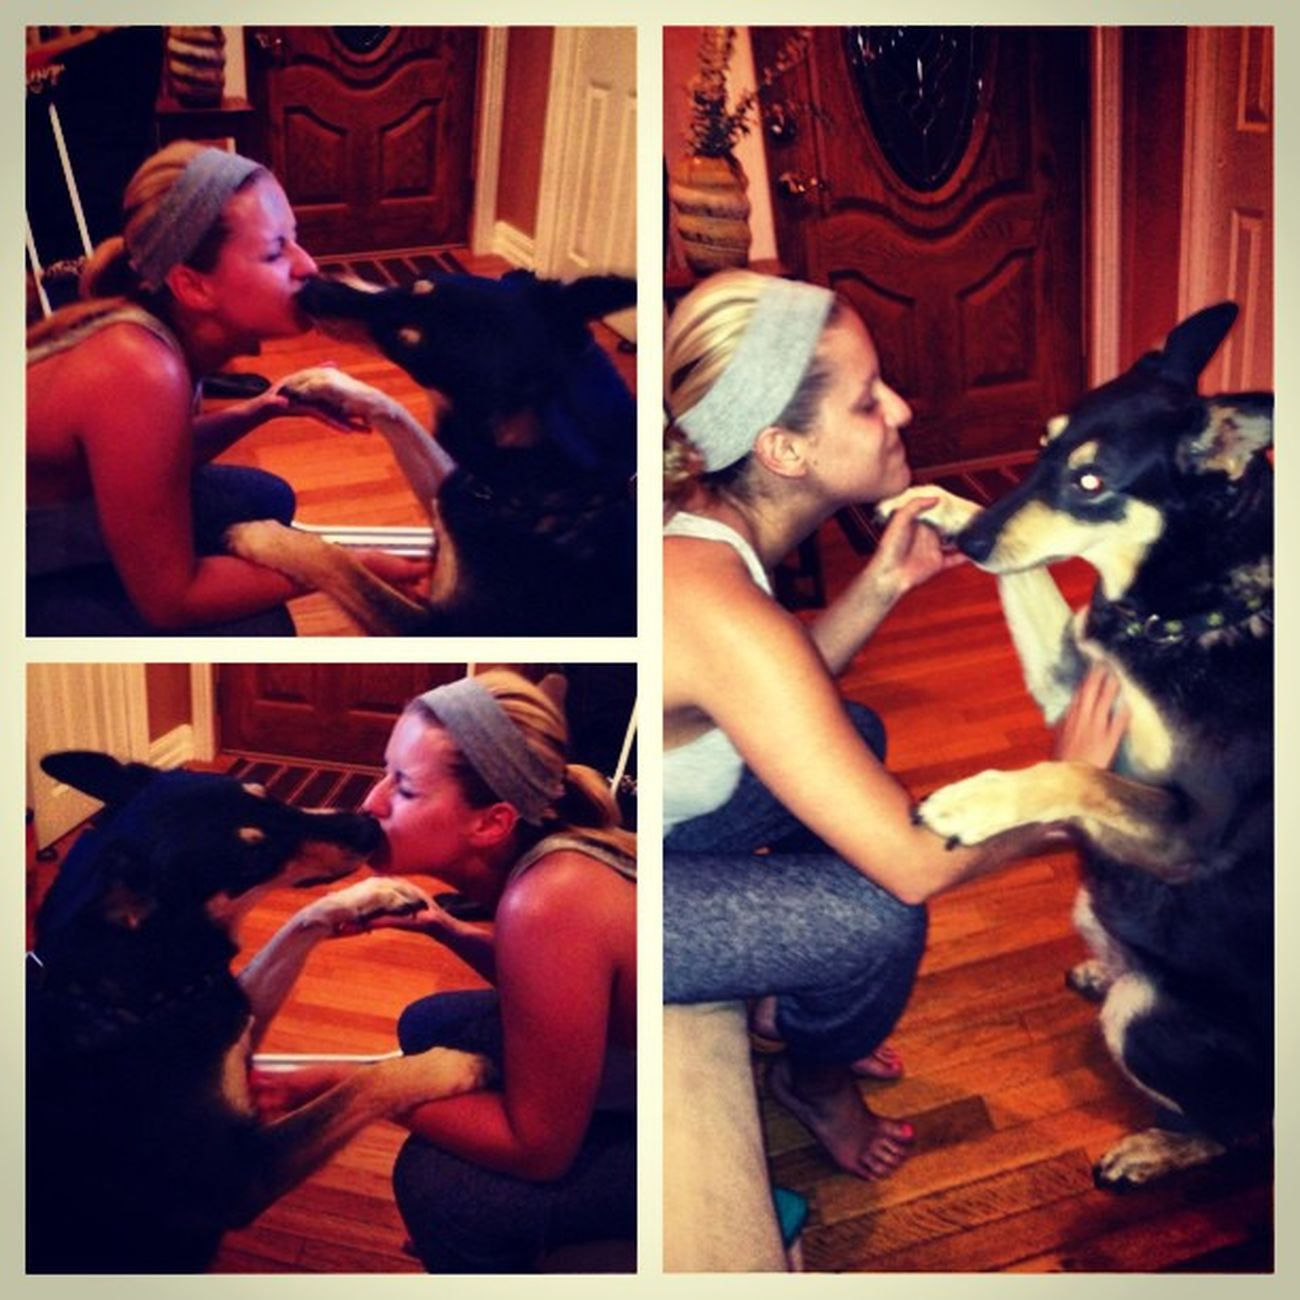 Picstitch  BittyMoose got my eyes my chin my forehead & finally got a picccc! (My mouth's closed by the way for all you perverts that would think I'd tongue my dog) German Shepard Swiss Mountain Dog Moose Bitty .. The only thing that came out of a relationship with a dbaggg cheater ? loveher bigbaby